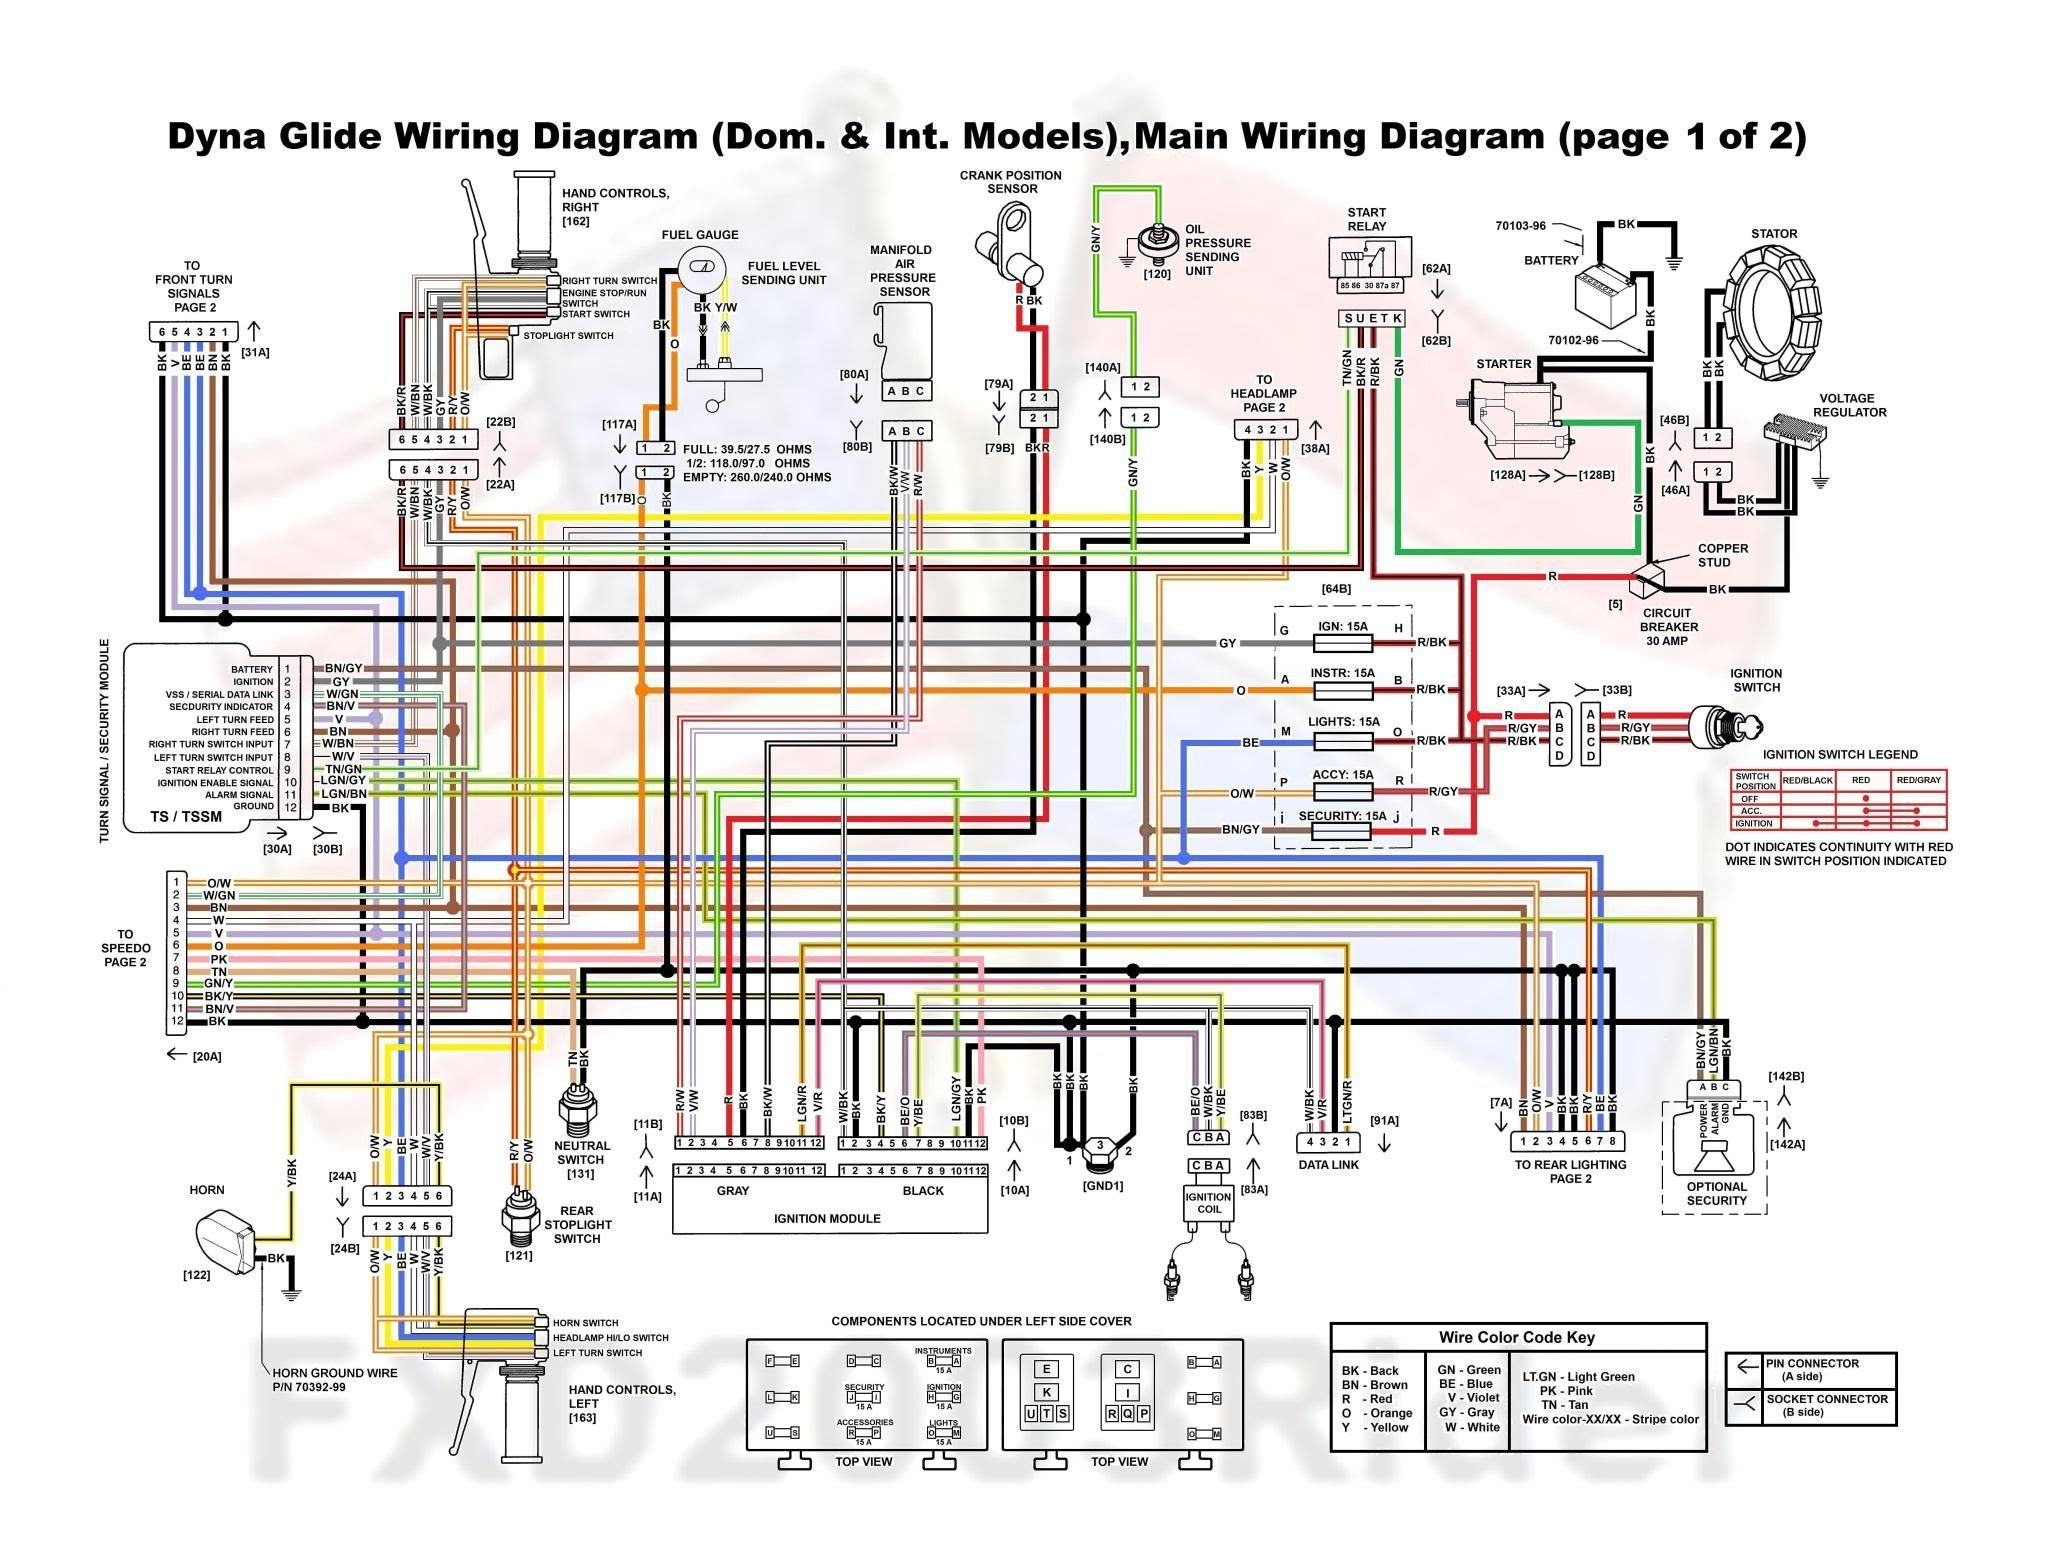 Basic Wiring Diagram For Harley Davidson | WiringDiagram.org | Motorcycle  wiring, Voltage regulator, Harley davidson ultra classic | 99 Softail Standard Wiring Diagram |  | Pinterest